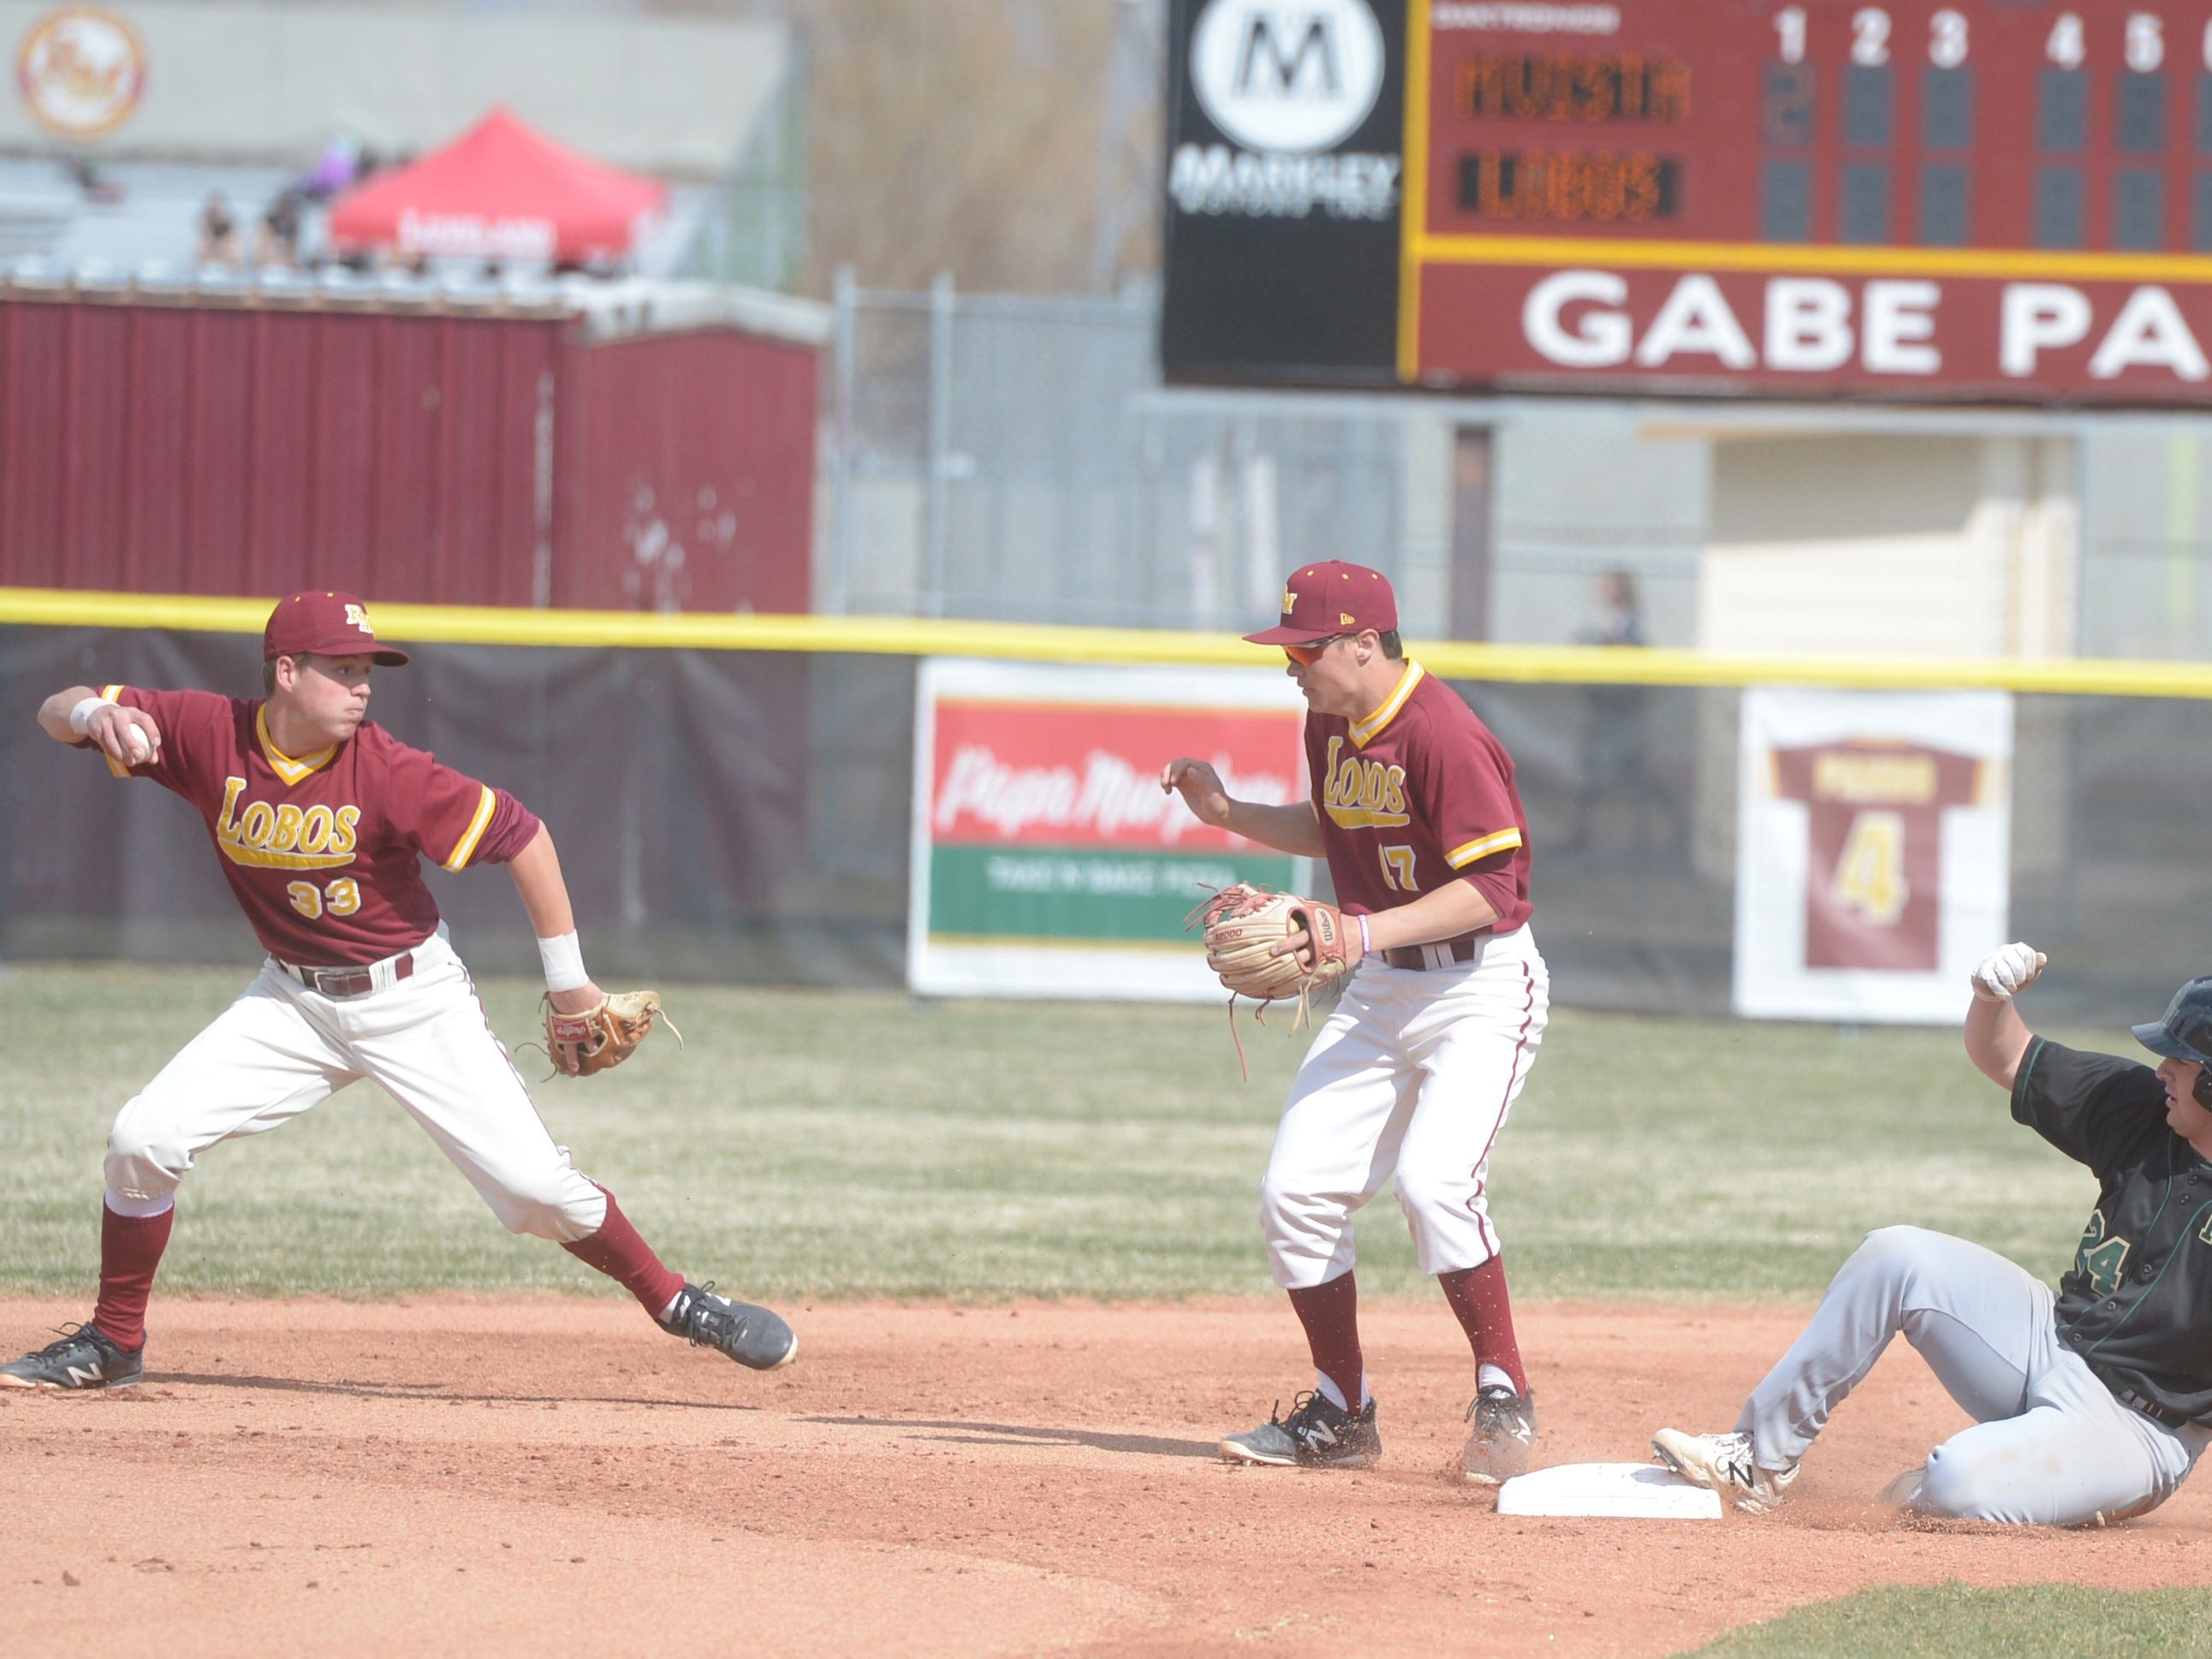 Rocky Mountain baseball shortstop Will Vasseur, left, throws to first during a game Wednesday, April 3, 2019 against Mountain Vista. Mountain Vista won 10-2.